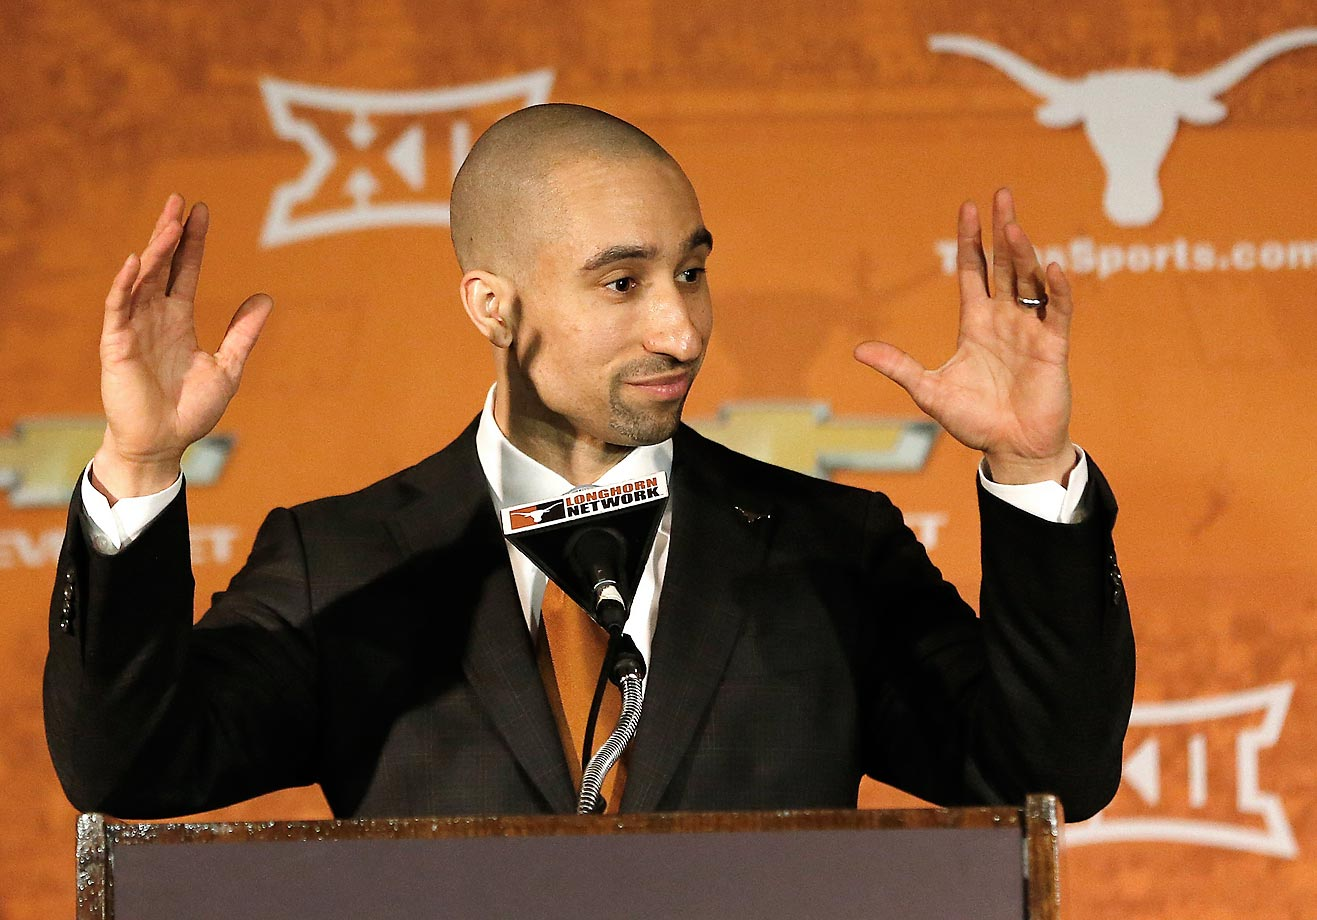 In March, Texas fired longtime basketball coach Rick Barnes, who led the program to a 402-180 record in 17 years in Austin. The Longhorns replaced Barnes with 38-year-old Shaka Smart, who led VCU to a 163-56 record over six seasons. The highlight of Smart's tenure at VCU was a surprising run to the 2011 Final Four. That season was the first of five straight in which the Rams reached the NCAA tournament. Texas has not reached the Sweet 16 since 2008 or the Final Four since 2003.                                      (Text credit: Alex Putterman/SI.com)